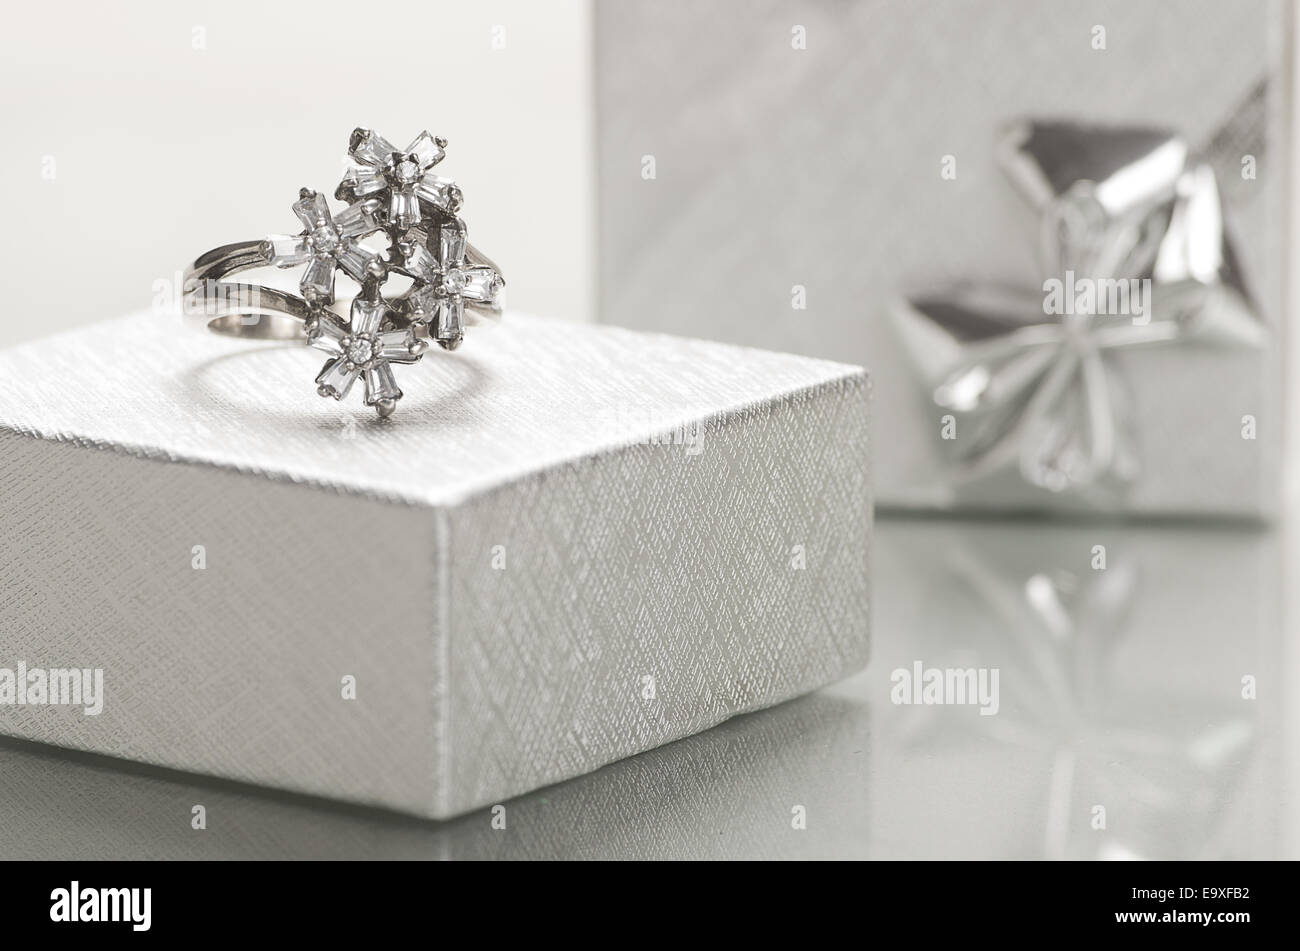 An engagement ring in a silver box. - Stock Image